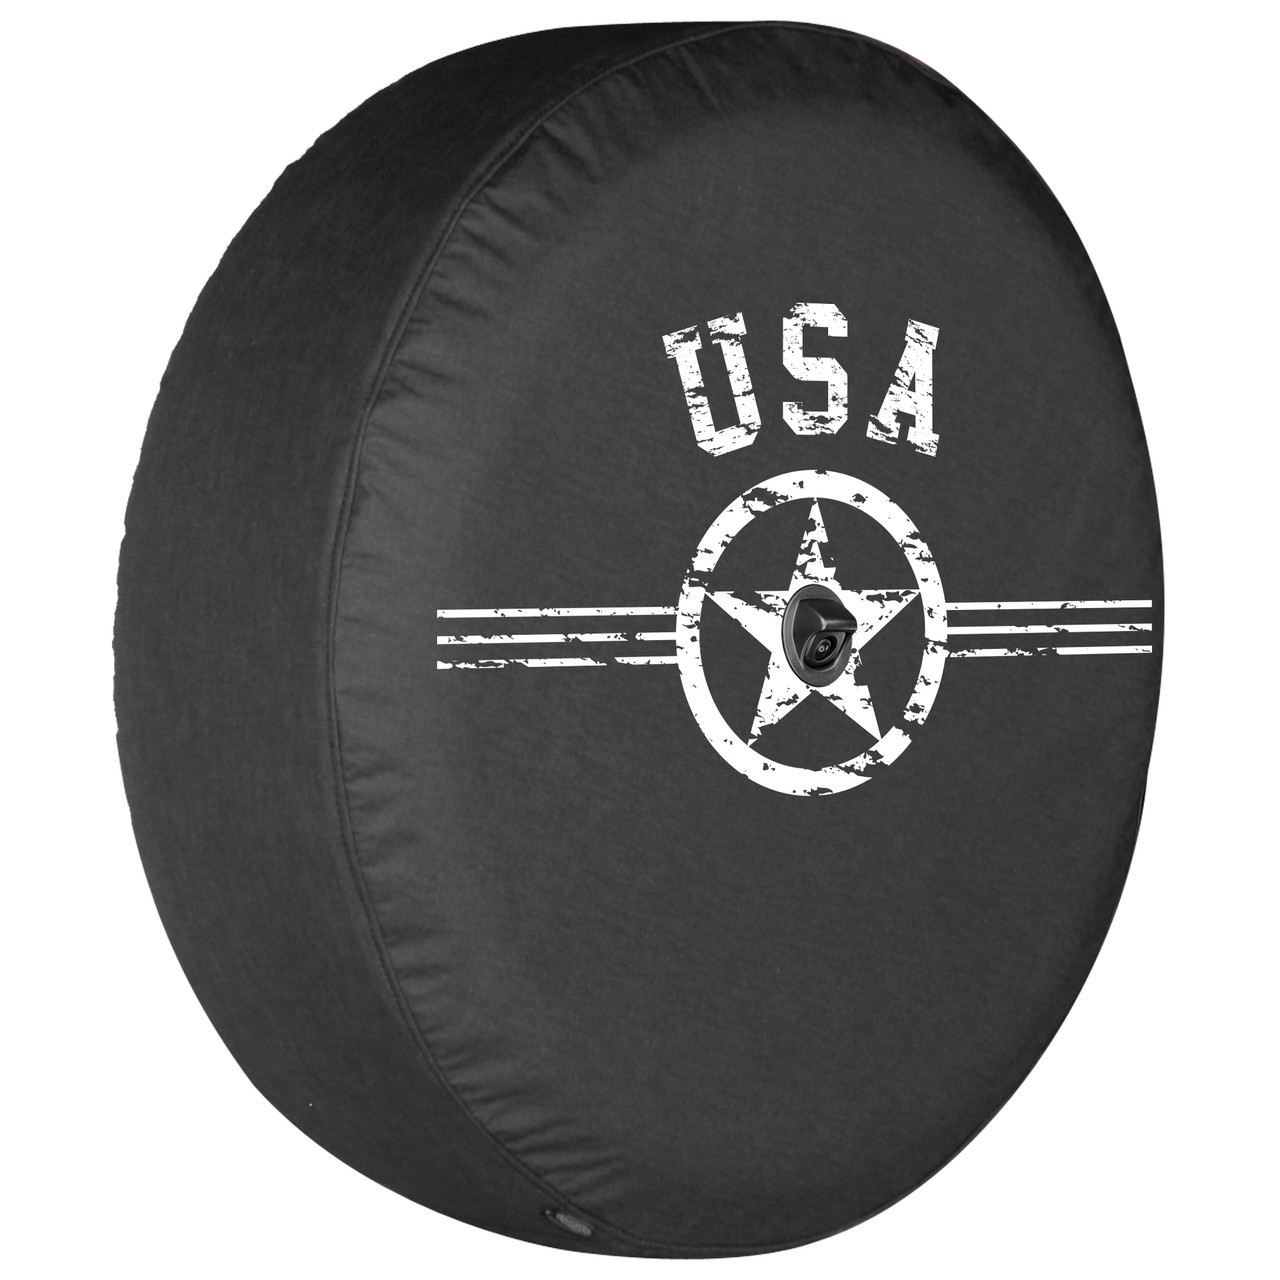 Jeep Wrangler JL Soft Tire Cover - Air Force Star USA